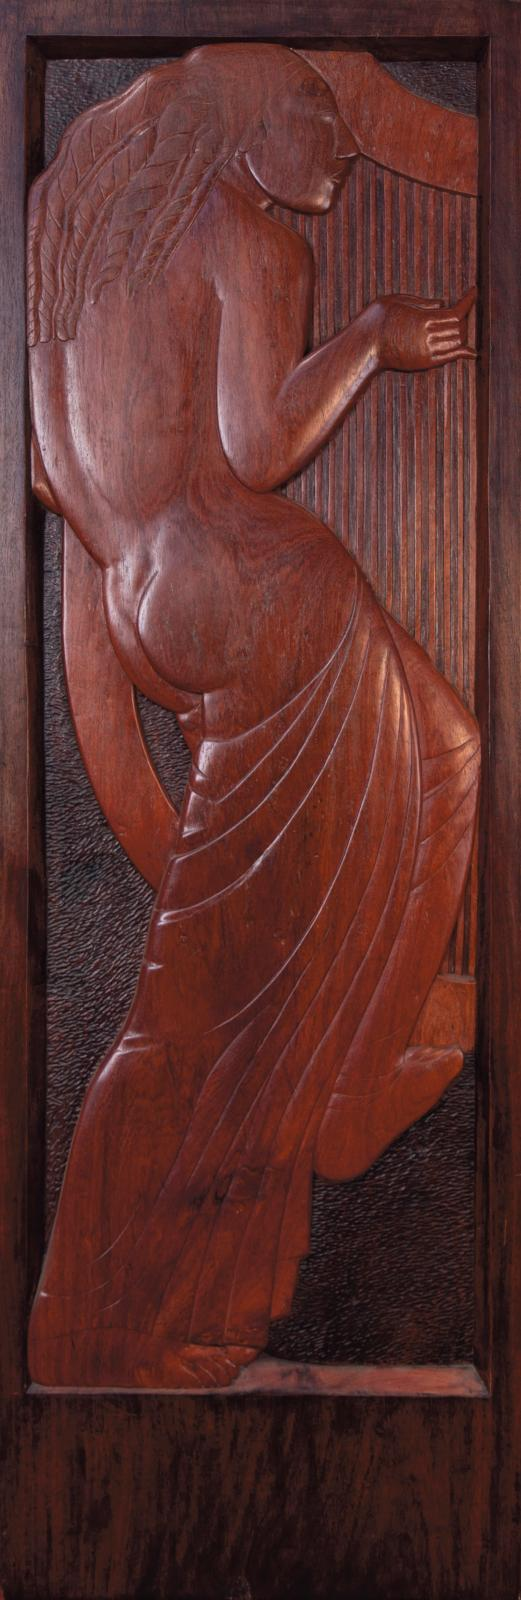 Attributed to Ivan Mestrovic (1883-1962), Woman with a harp, wood panel carved in high relief, 170 x 55 cm.Result: €50,200